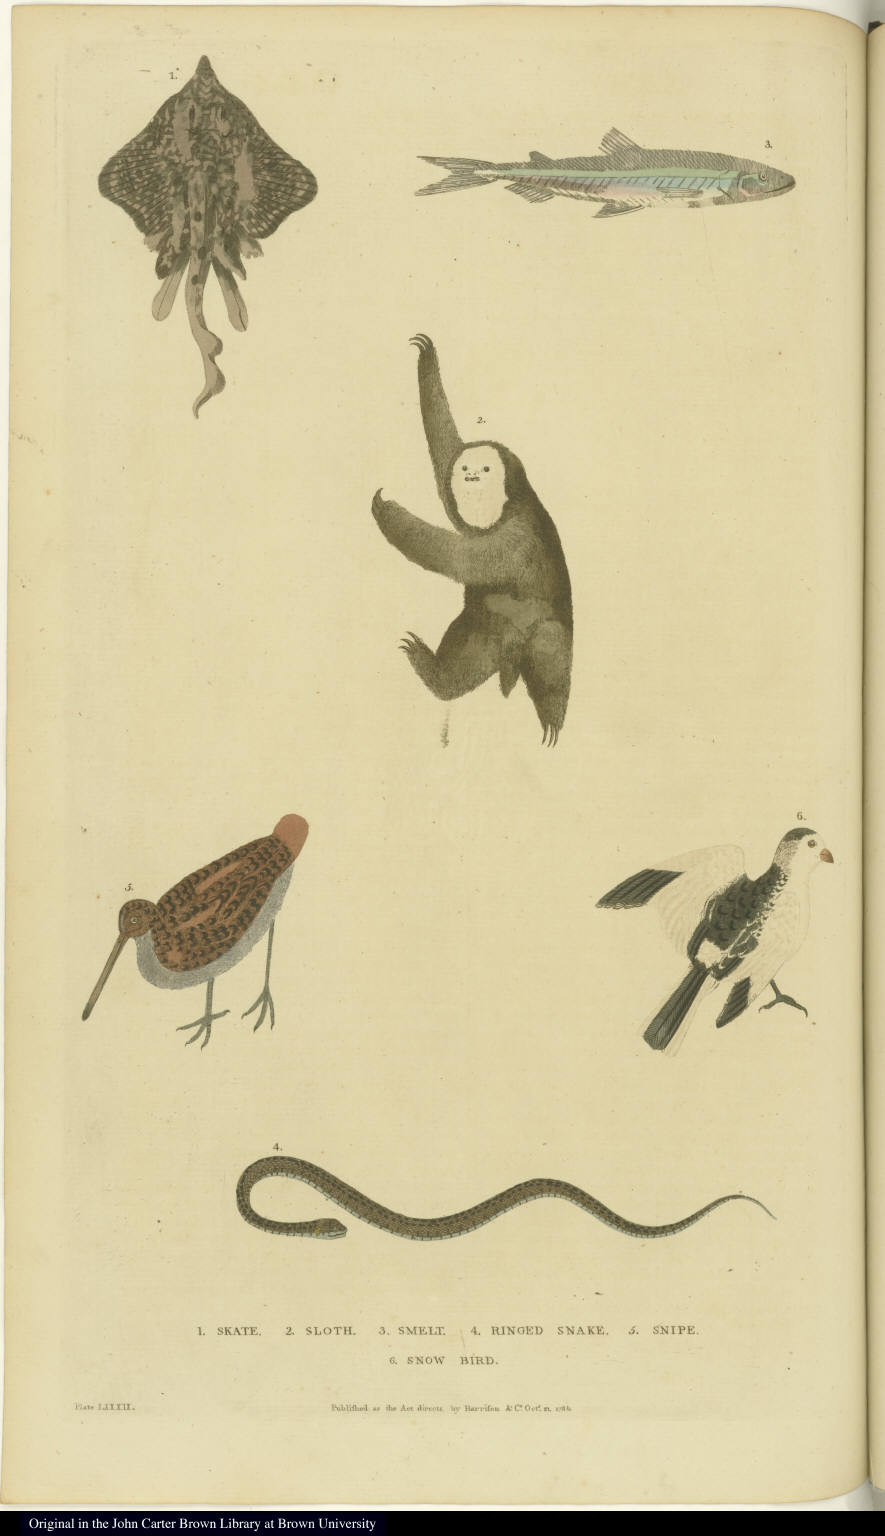 [Various birds, fish, a snake, and a sloth]